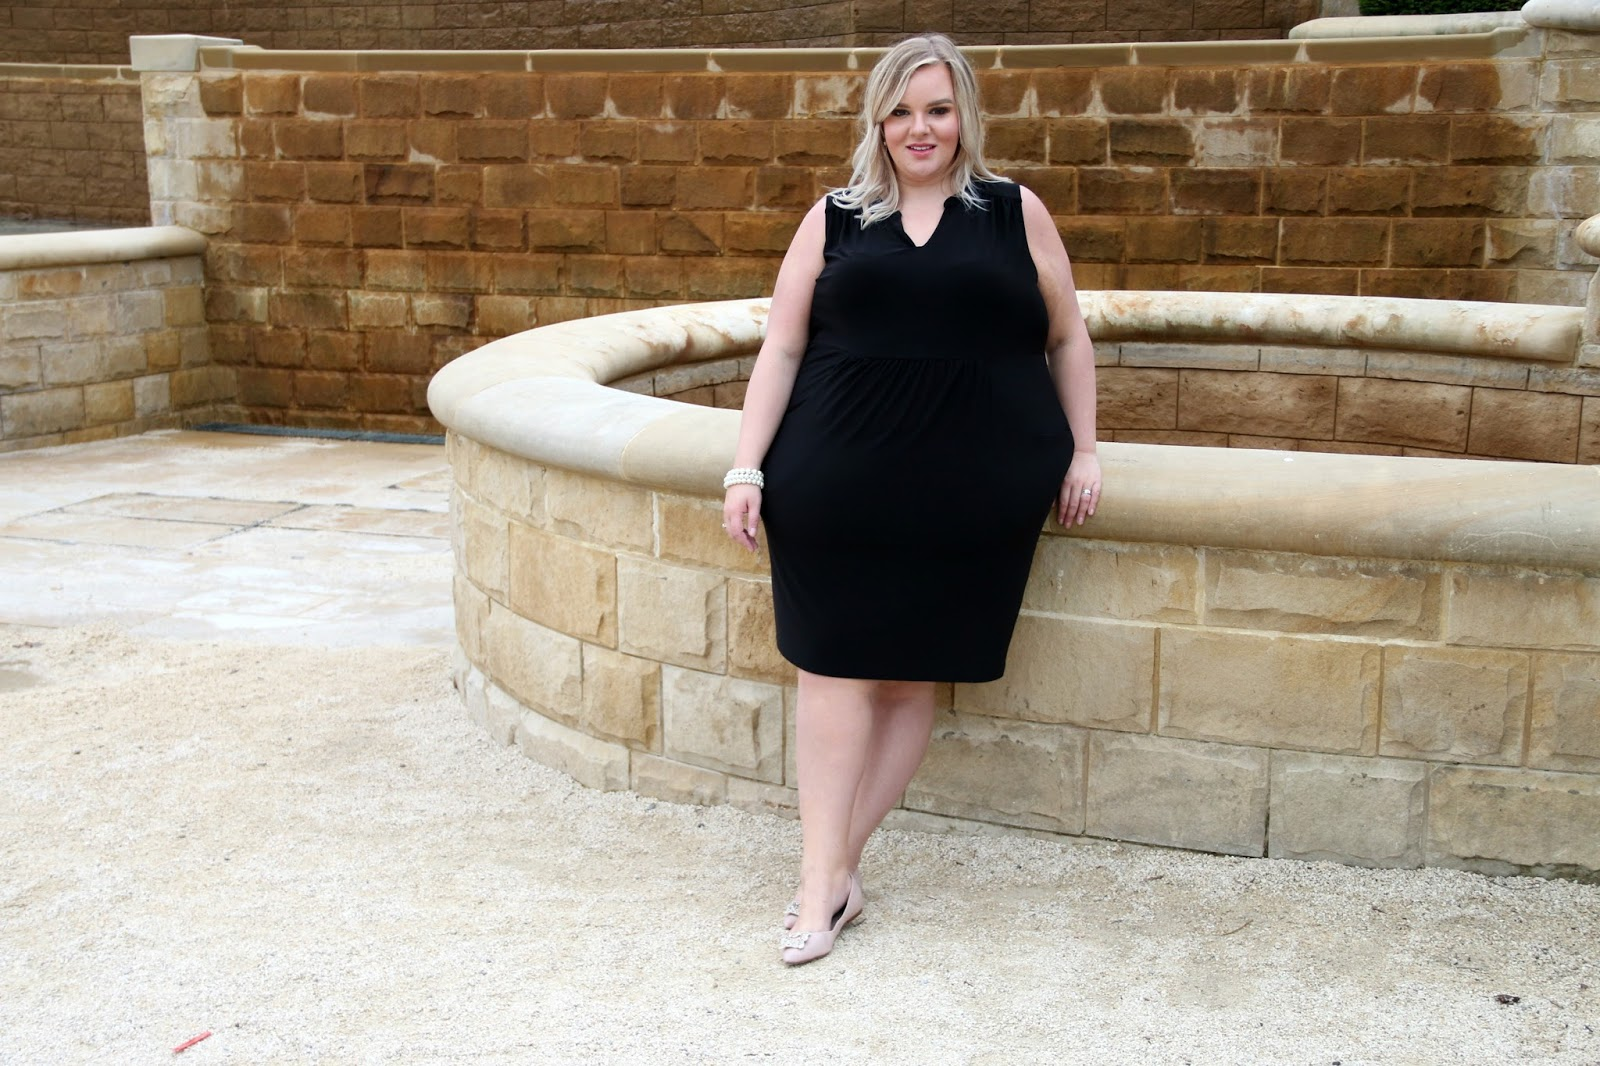 The Princes Trust Celebrate Success Awards Red Carpet Outfit Recreated at The Alnwick Garden, Northumberland